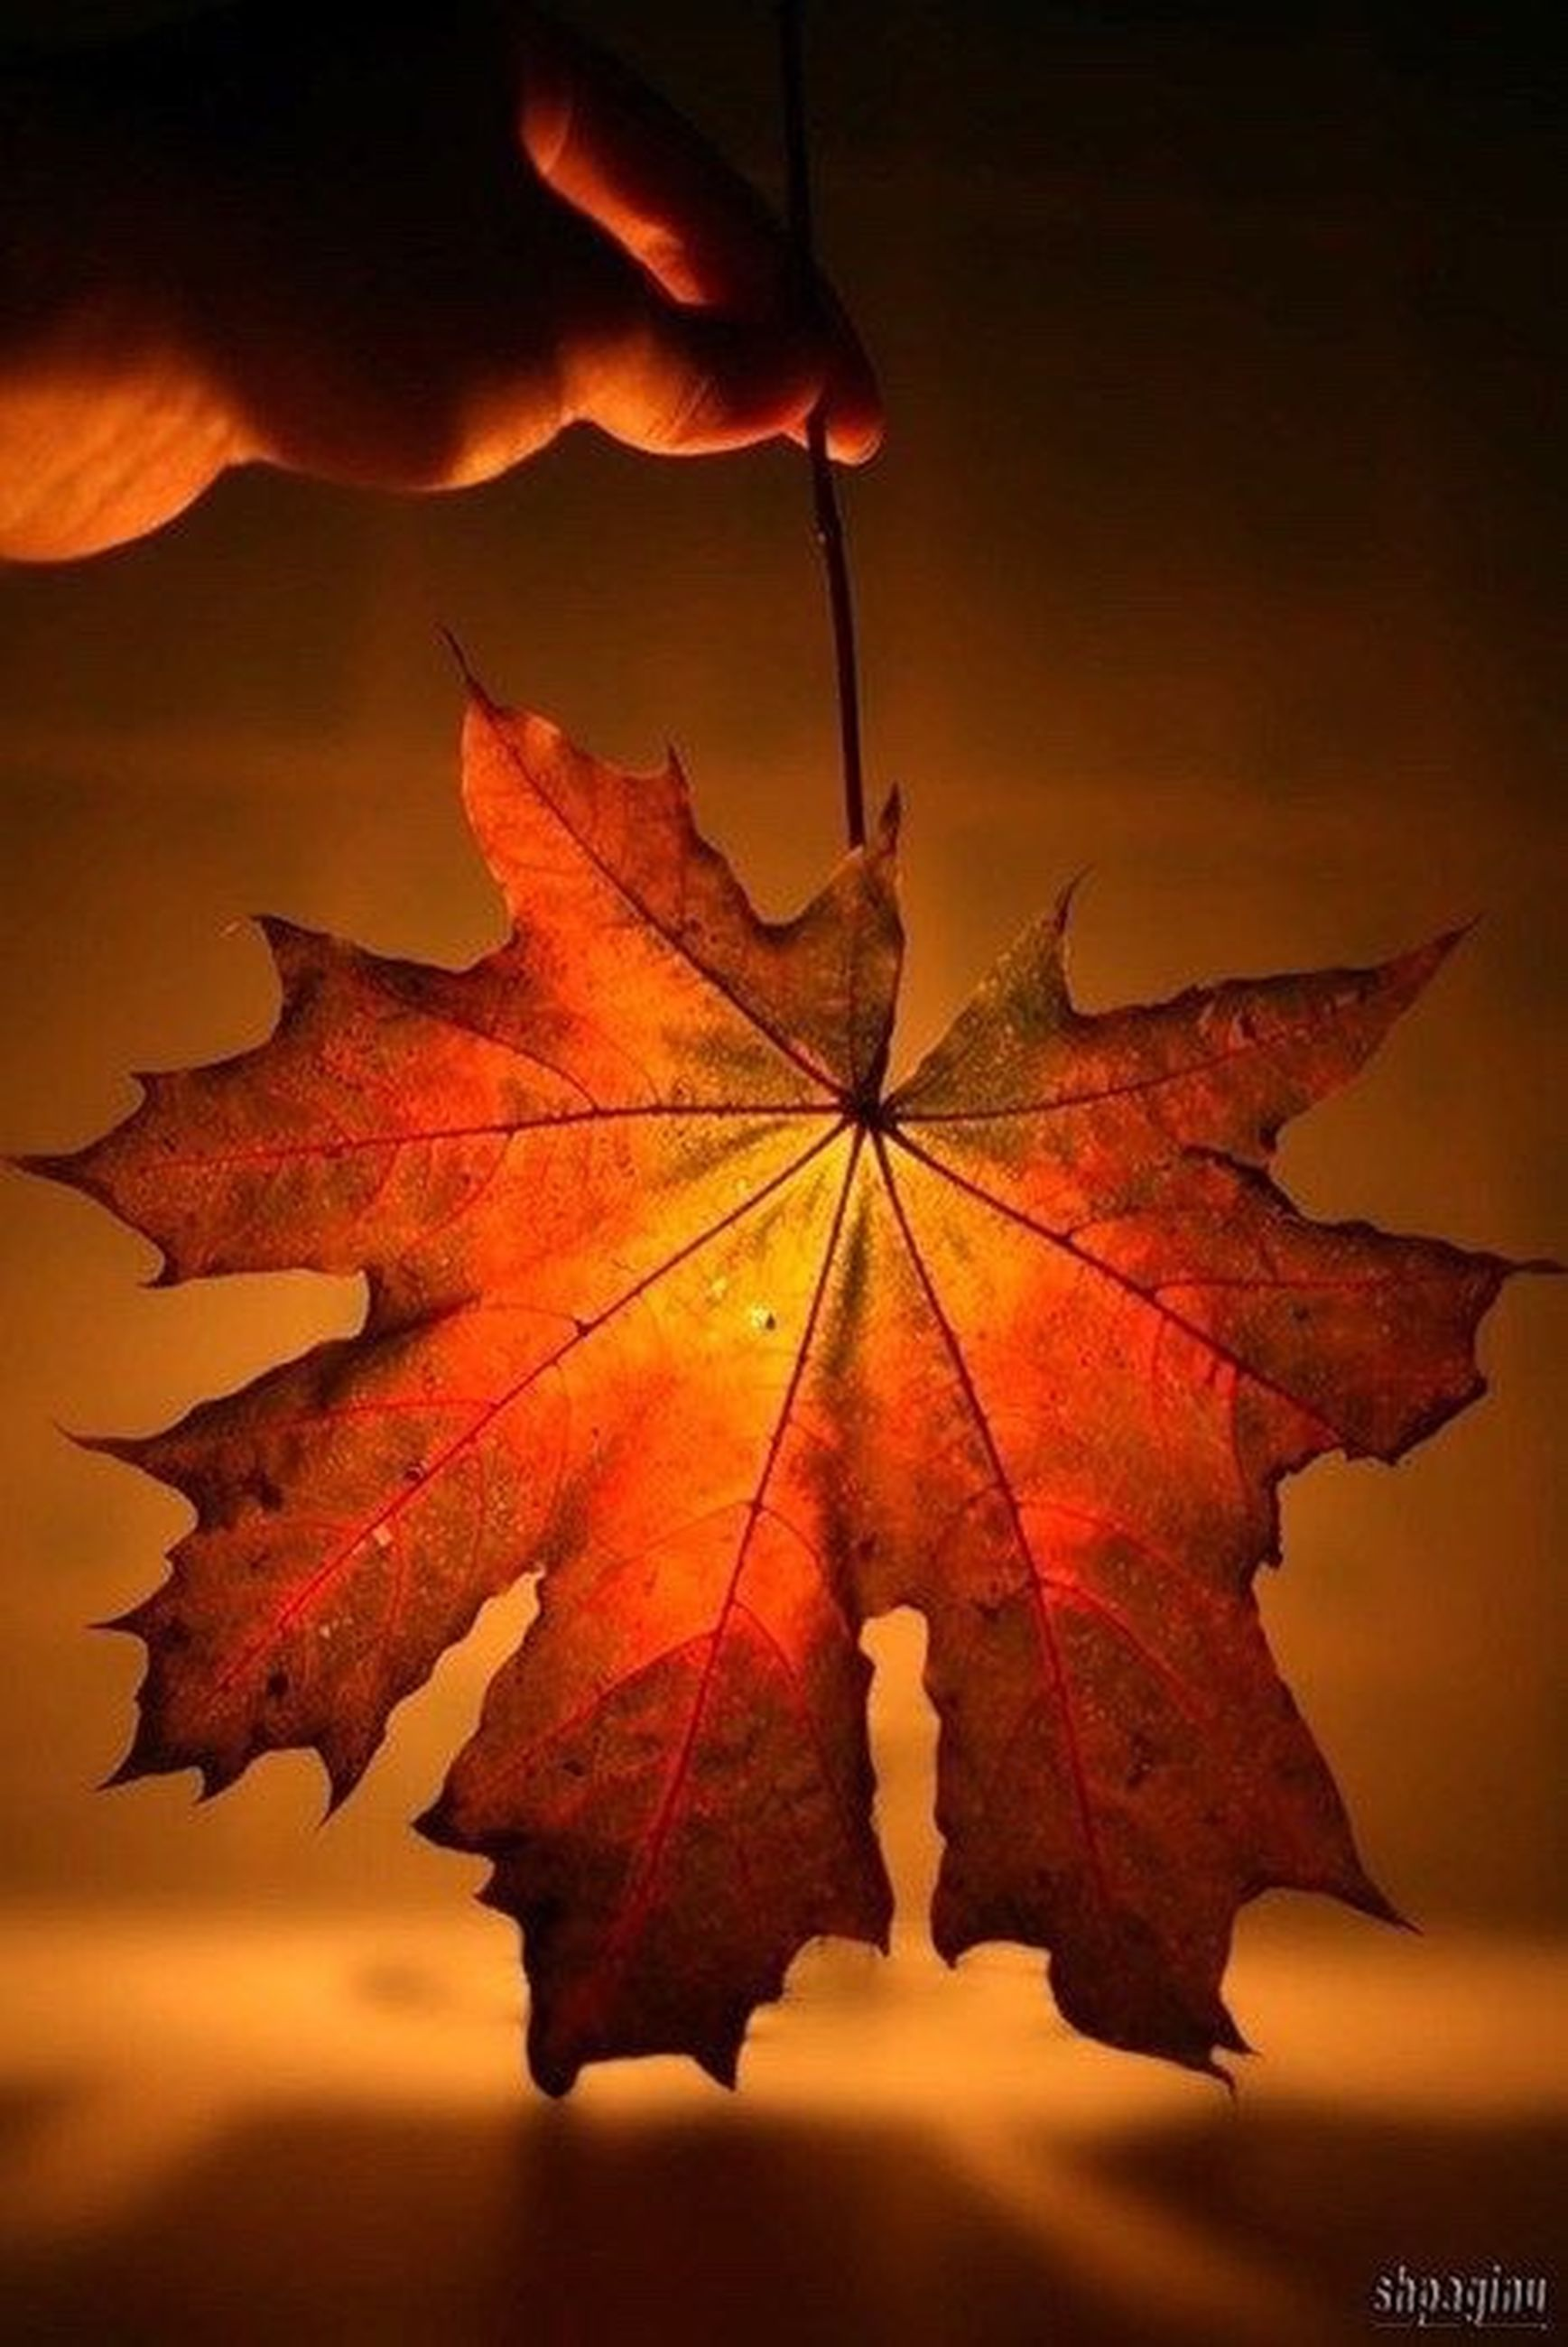 leaf, autumn, change, season, close-up, orange color, leaf vein, dry, maple leaf, natural pattern, natural condition, leaves, nature, tranquility, beauty in nature, person, multi colored, fragility, outdoors, scenics